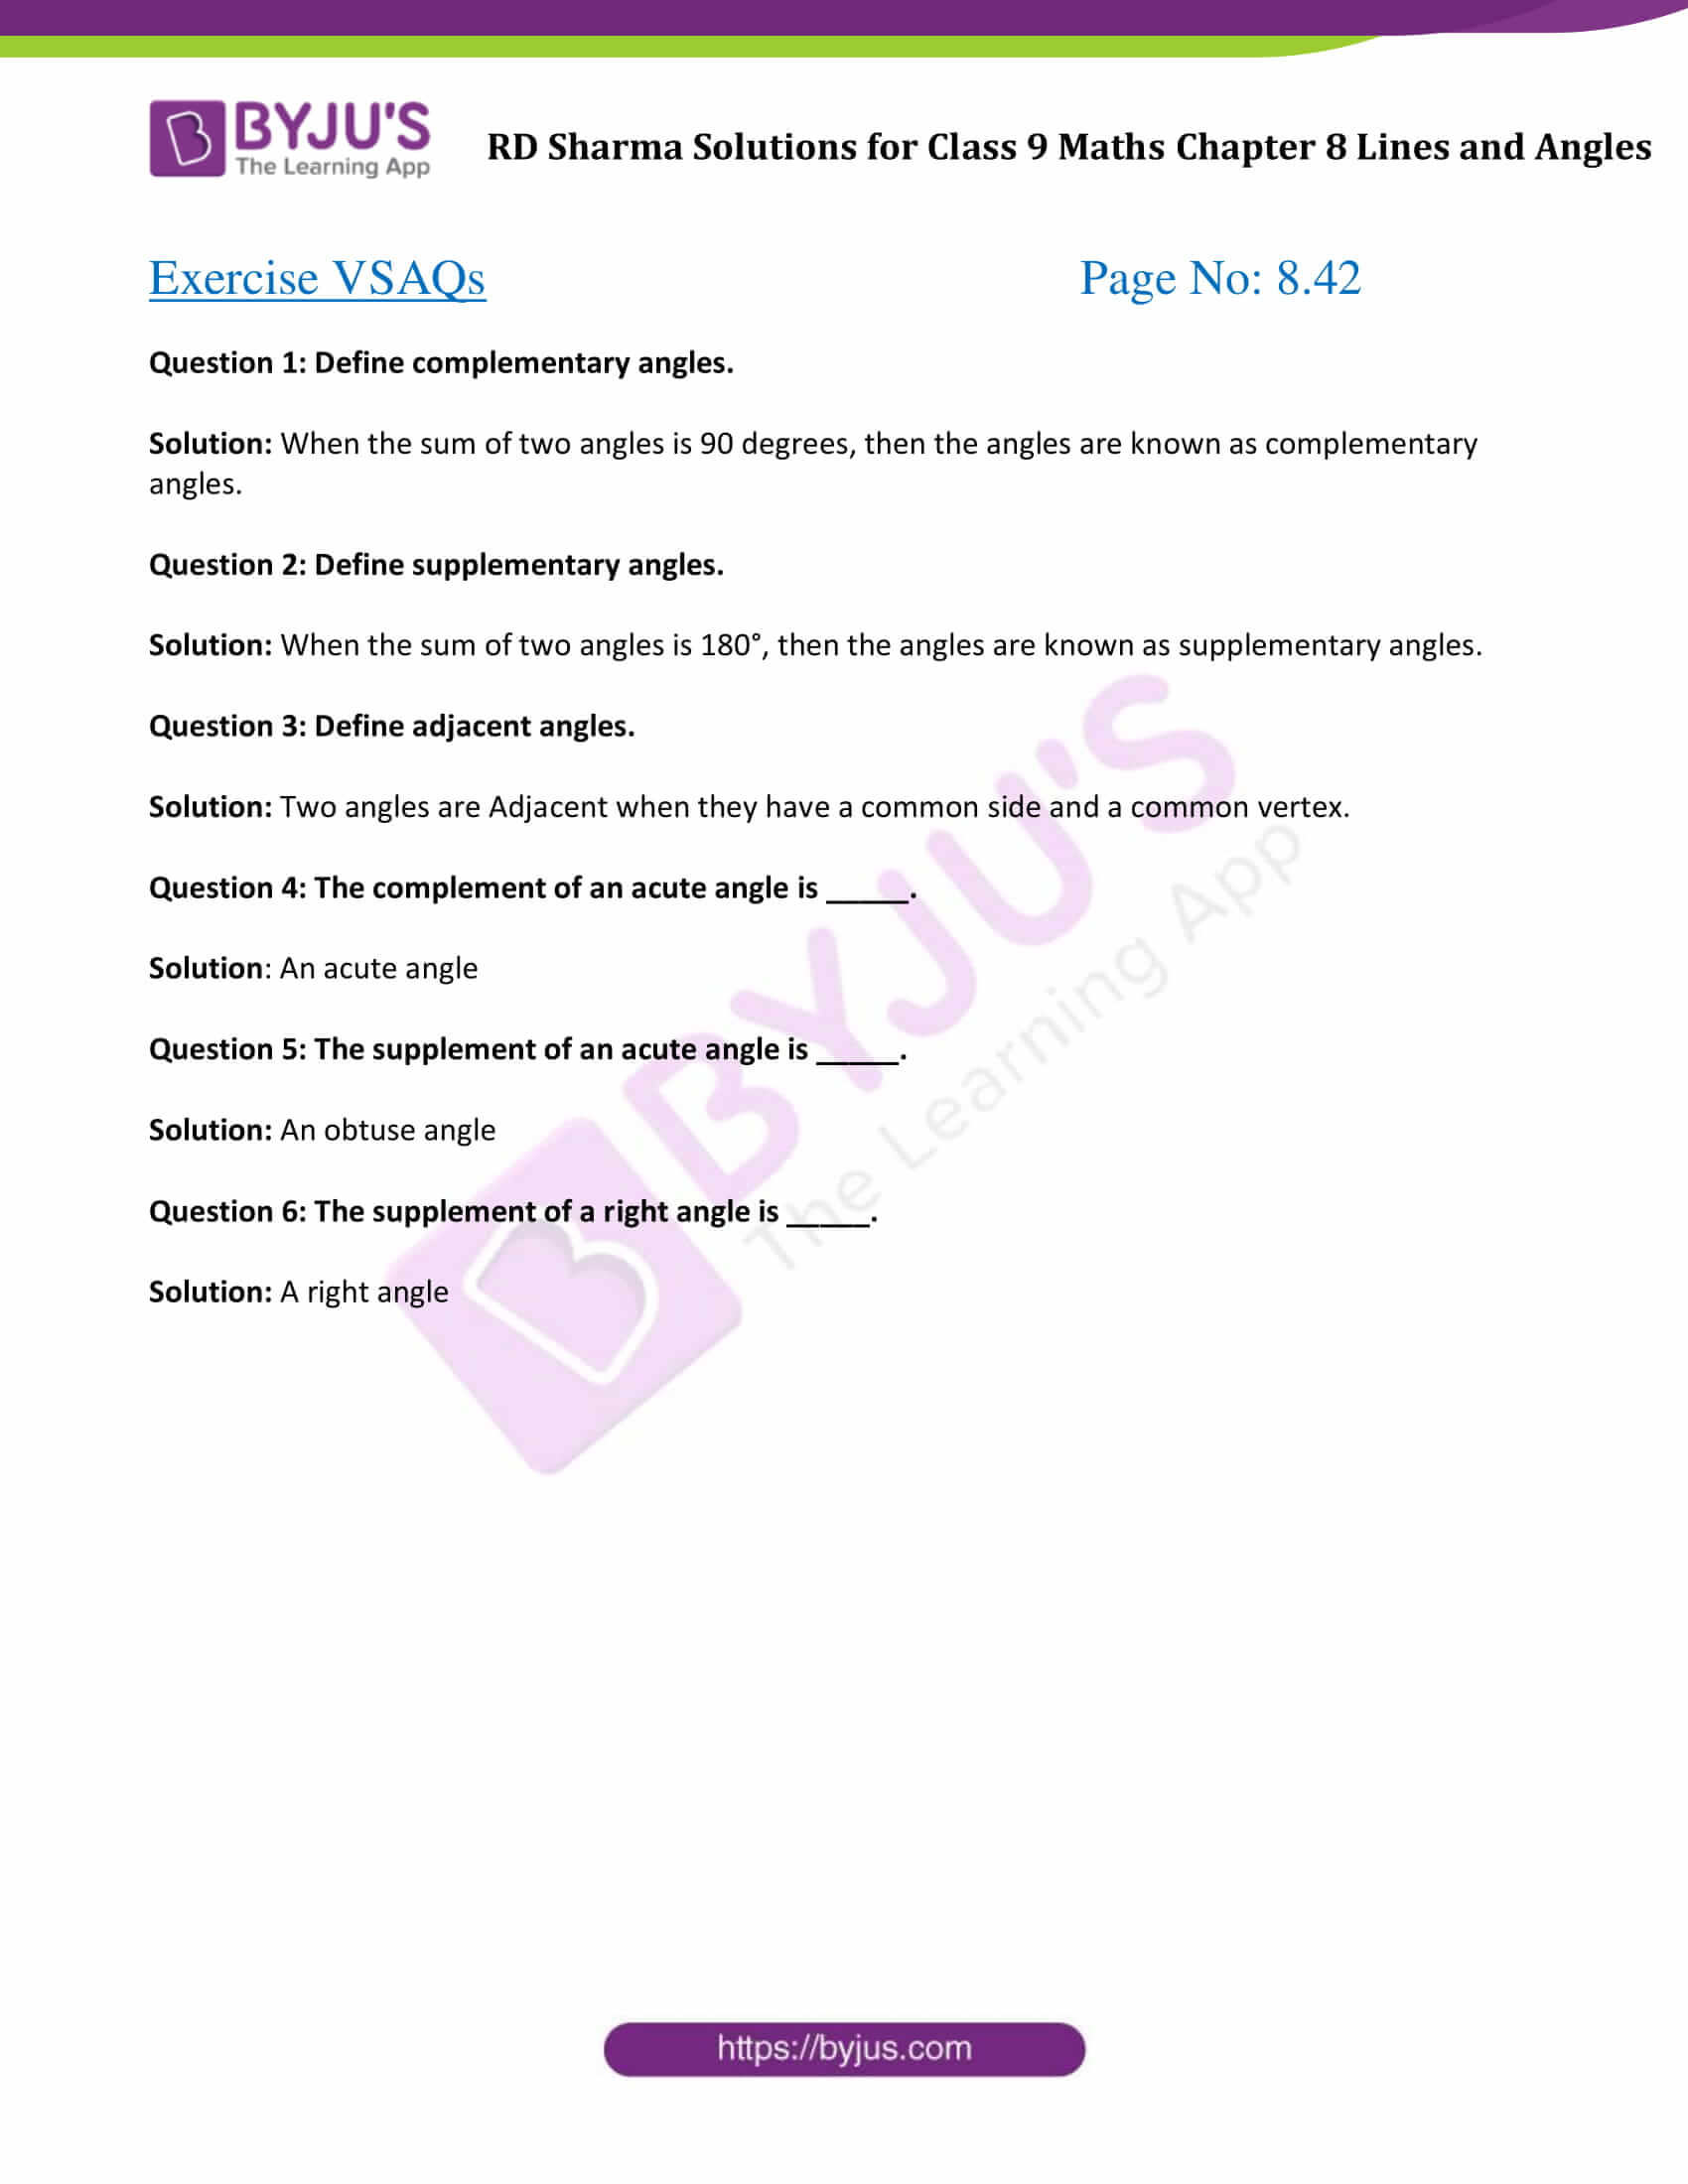 Download RD Sharma Solutions for Class 9 Maths Chapter 8 Lines and Angles Exercise VSAQs